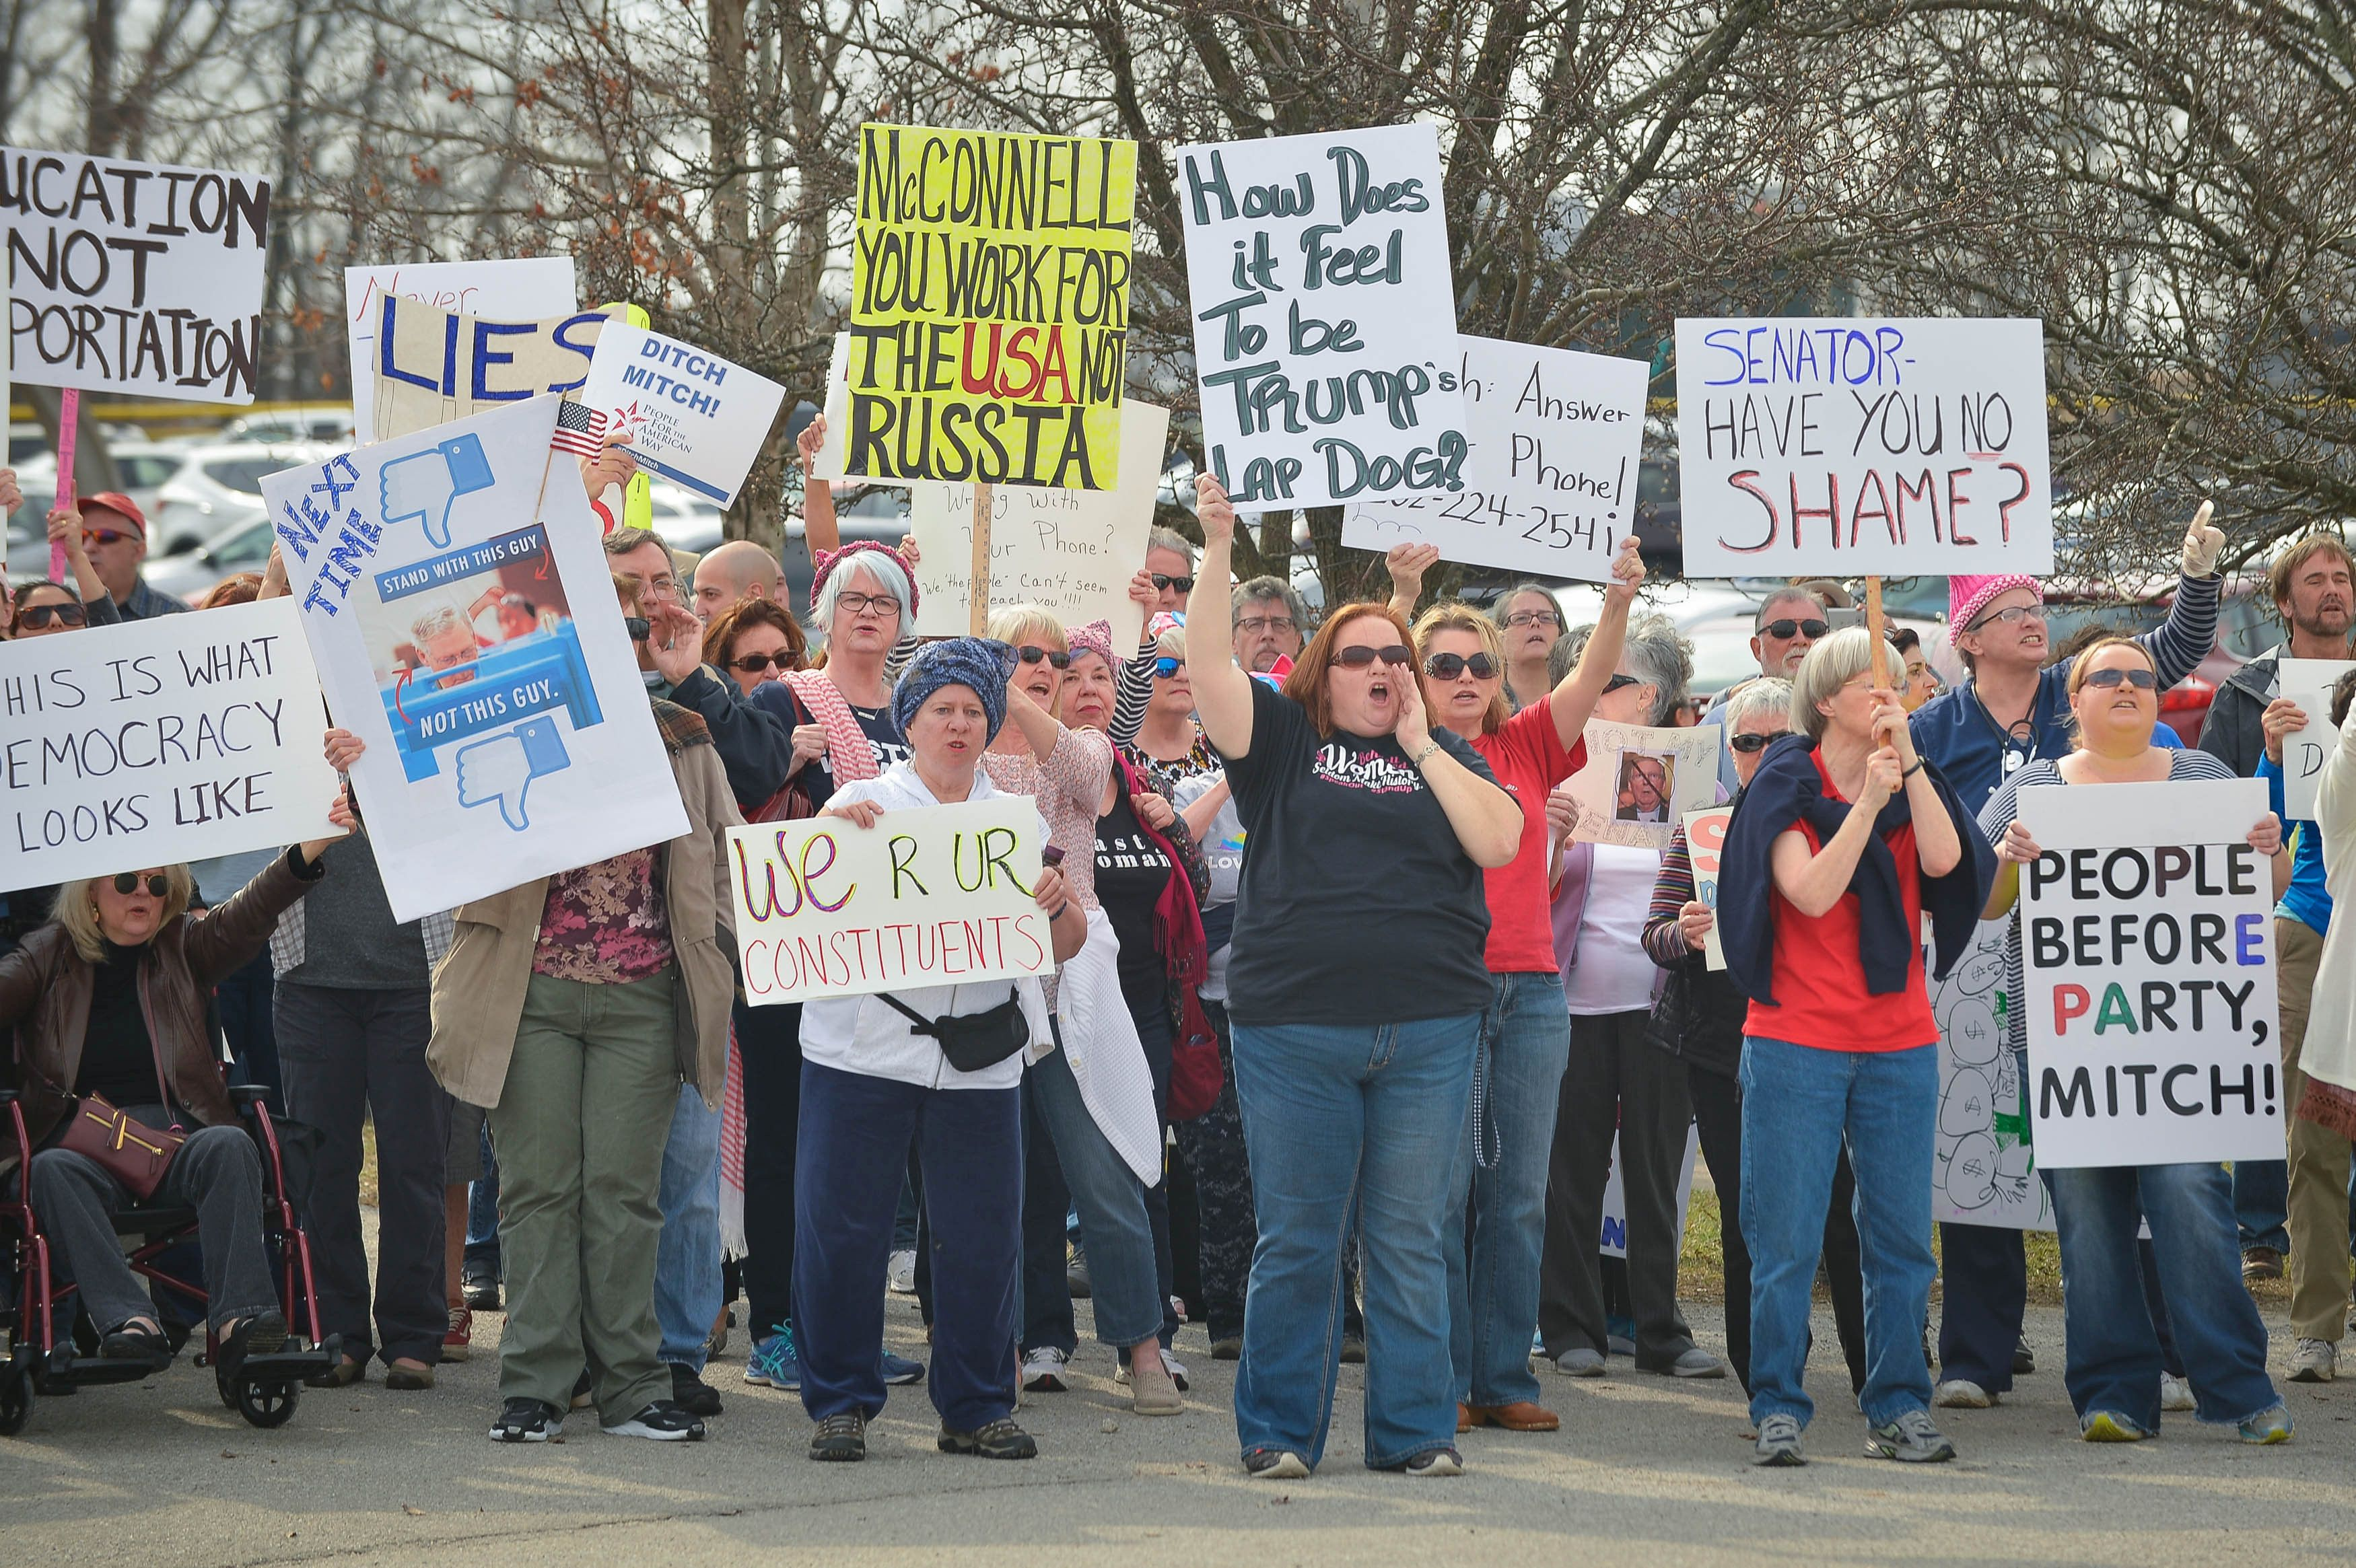 Protestors gather outside an event where U.S. Senate Majority Leader Mitch McConnell is scheduled to speak in Lawrenceburg, Kentucky, U.S., February 21, 2017.  REUTERS/Bryan Woolston